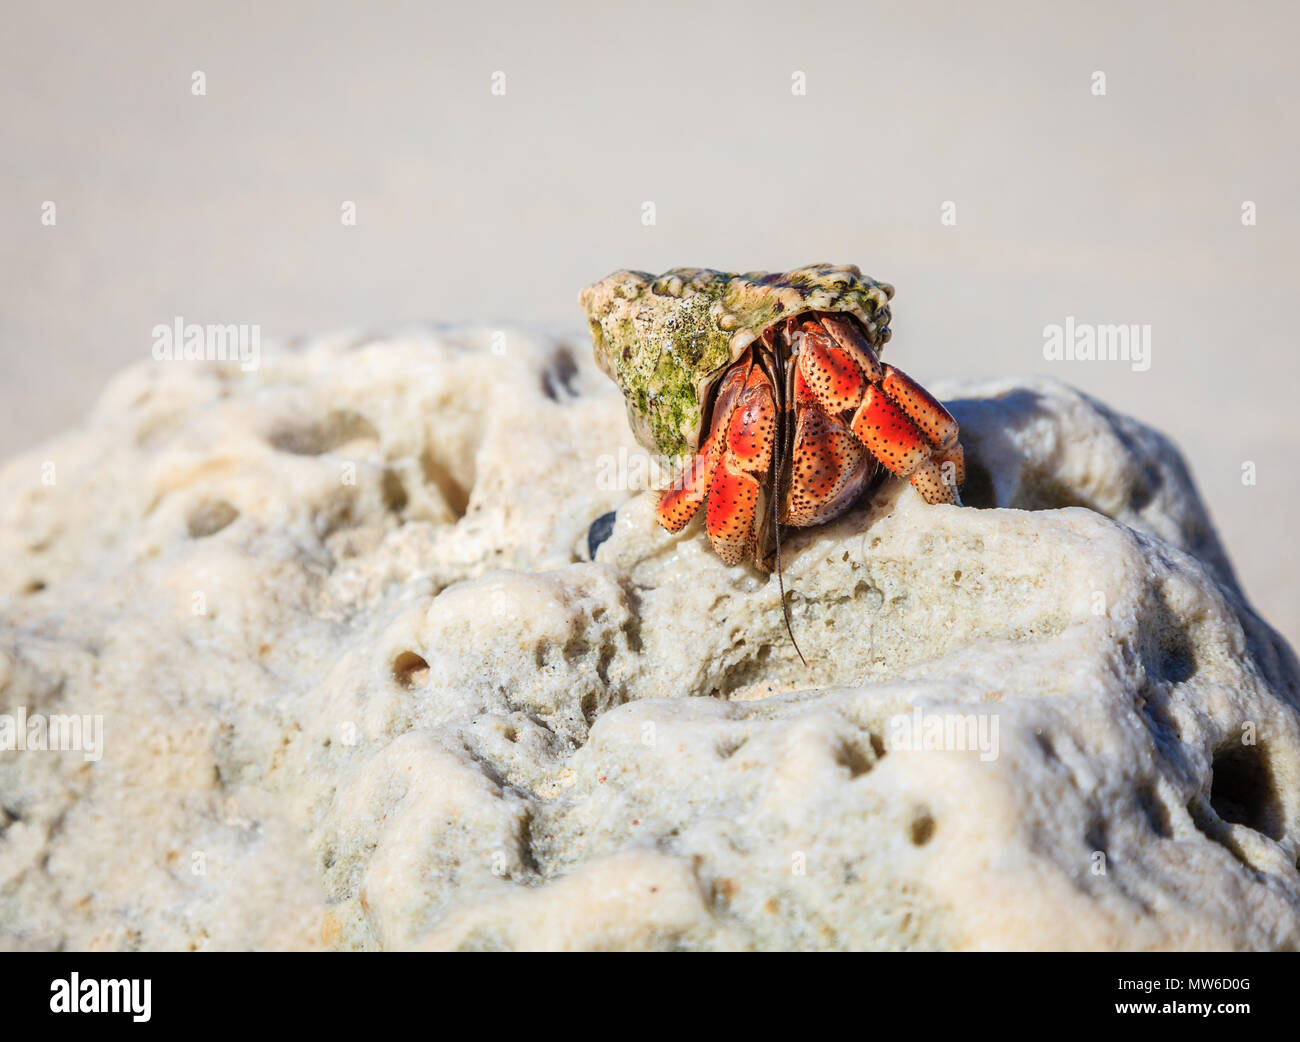 Hermit crab emerges from his shell on a beach in British Virgin Islands - Stock Image